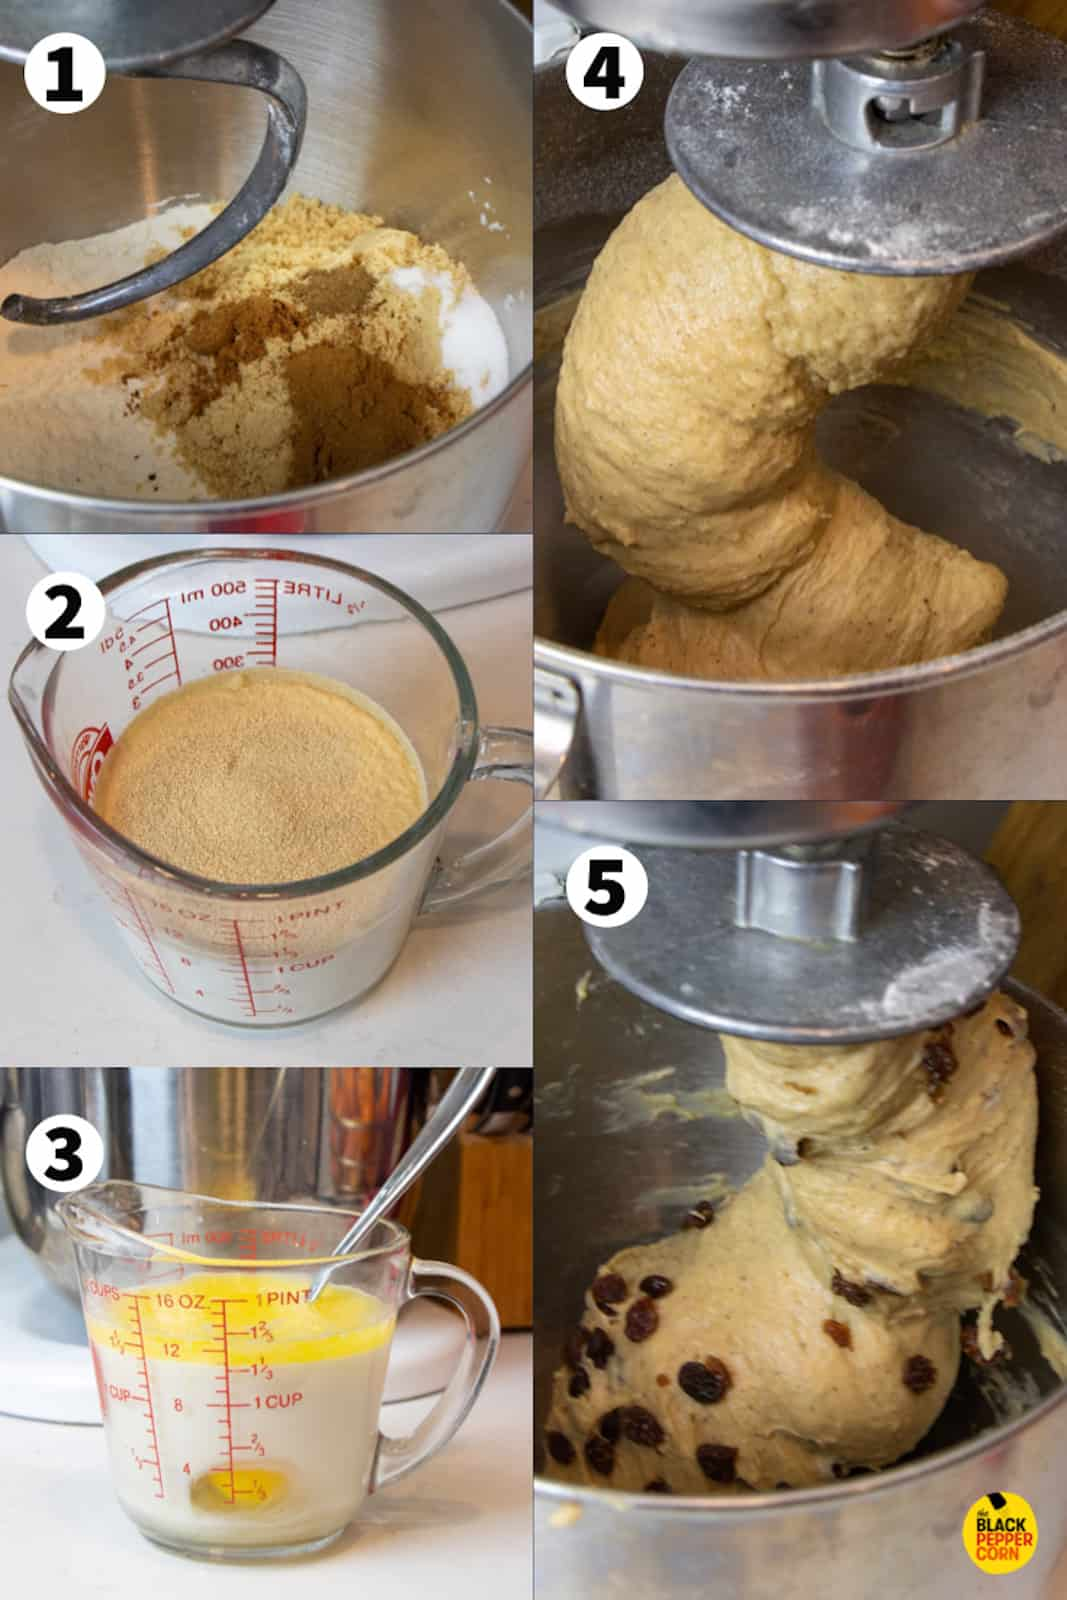 Step by step photos of dissolving yeast in warm milk and kneading with dry ingredients to make the dough.